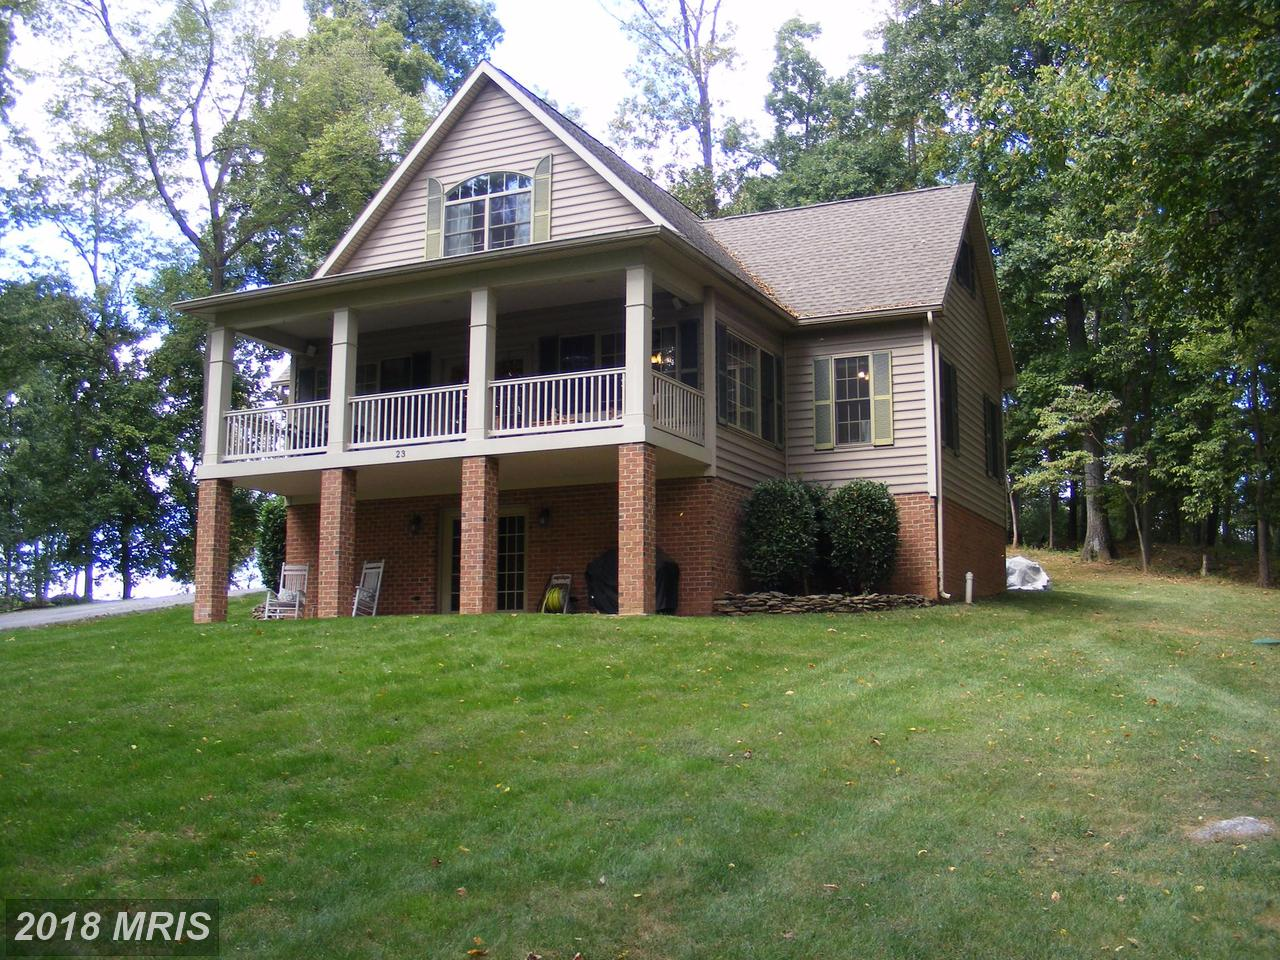 Residential Properties For Sale In Charles Town Wv